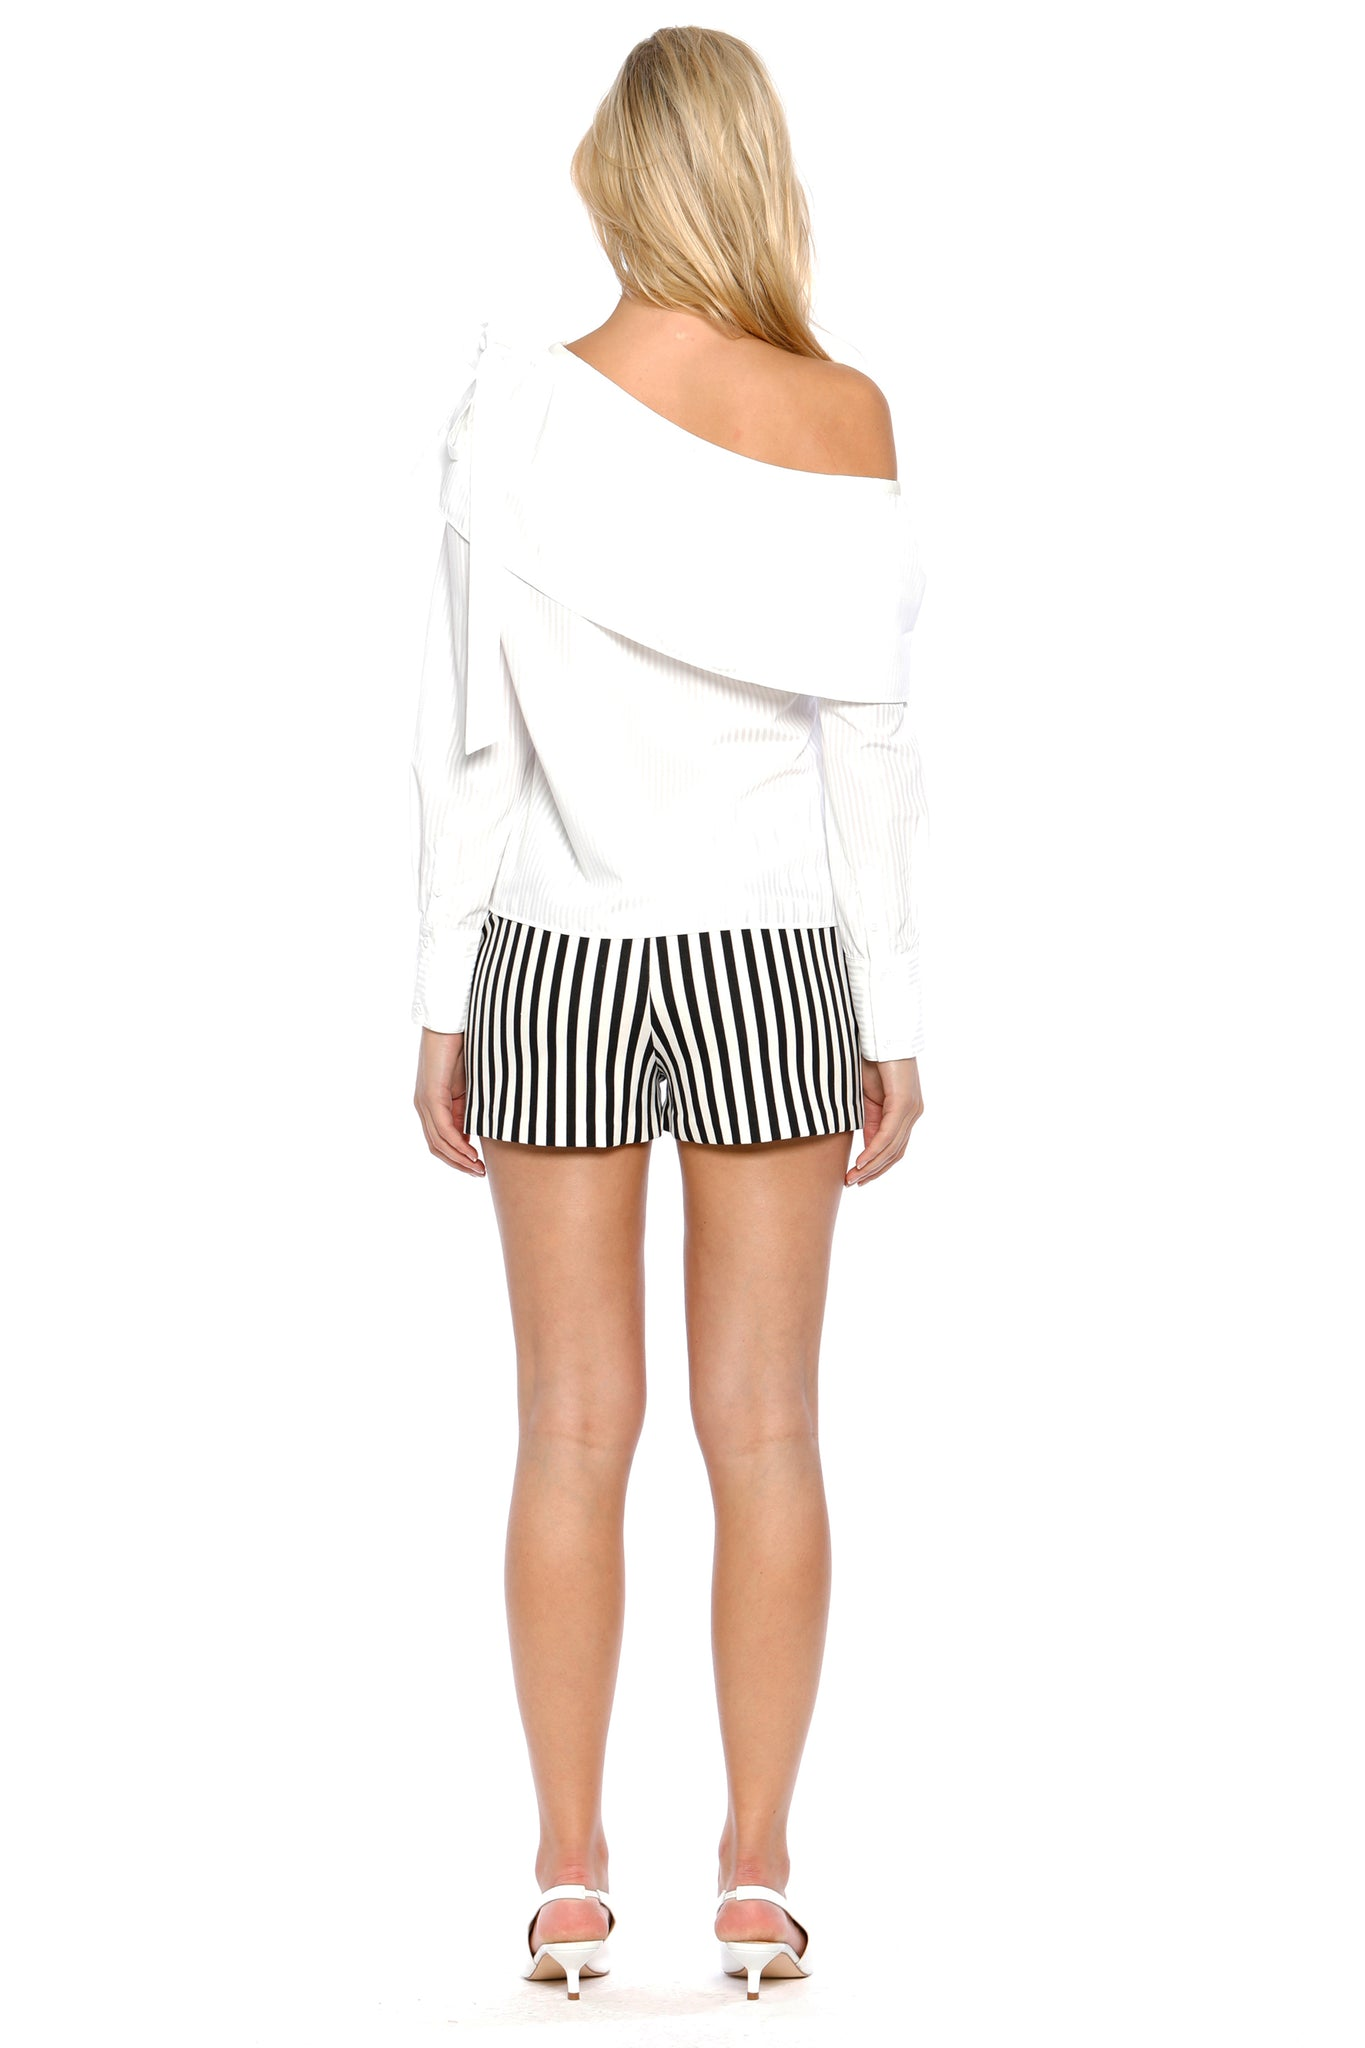 Back view of Jeanne Short, black-and-white-striped short shorts with frilled pockets. 60% Rayon, 35% Nylon, and 5% Spandex - and Machine-washable.